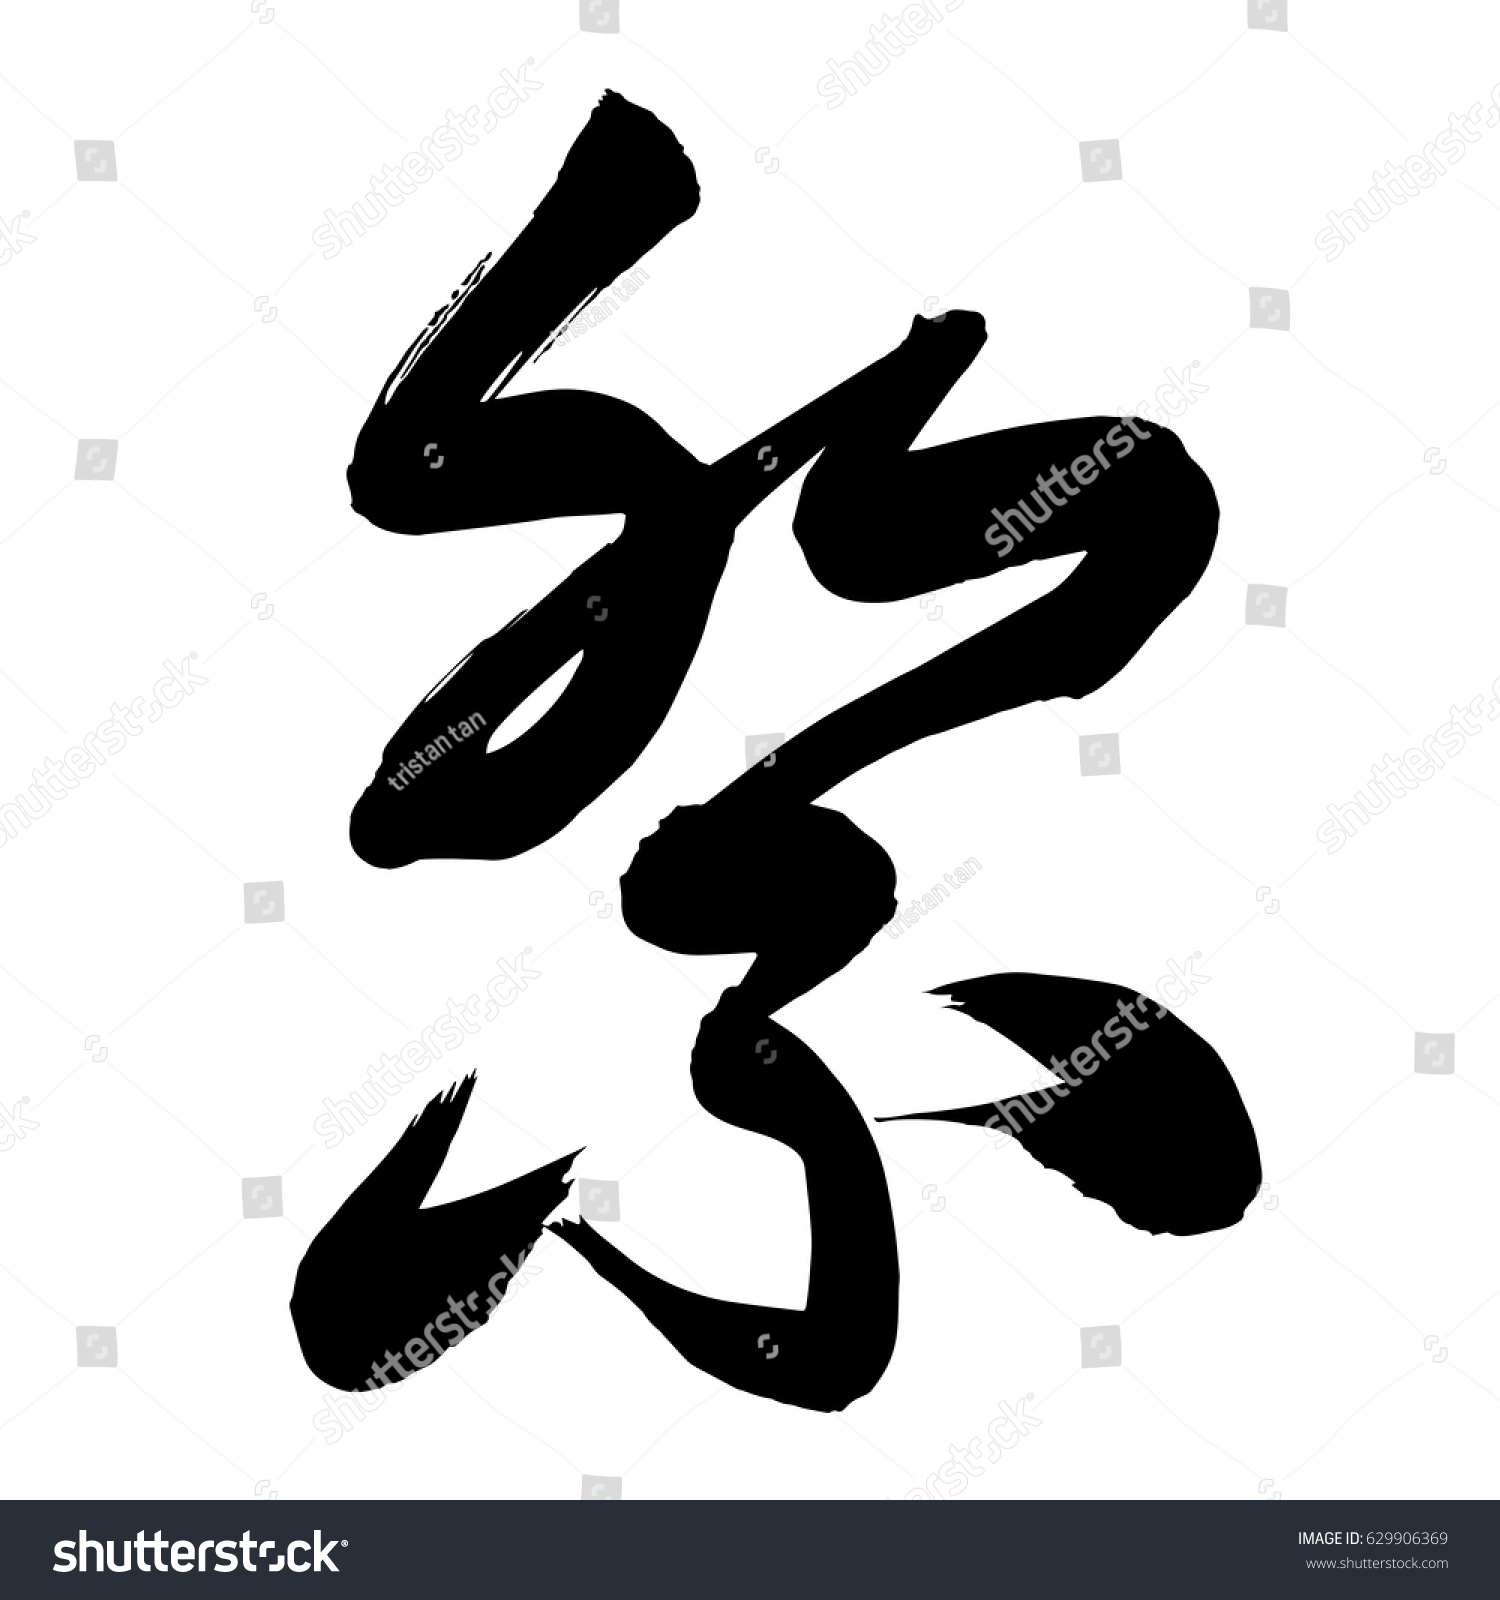 Chinese calligraphy translation offer sacrifice festive stock chinese calligraphy translation to offer sacrifice festive occasion biocorpaavc